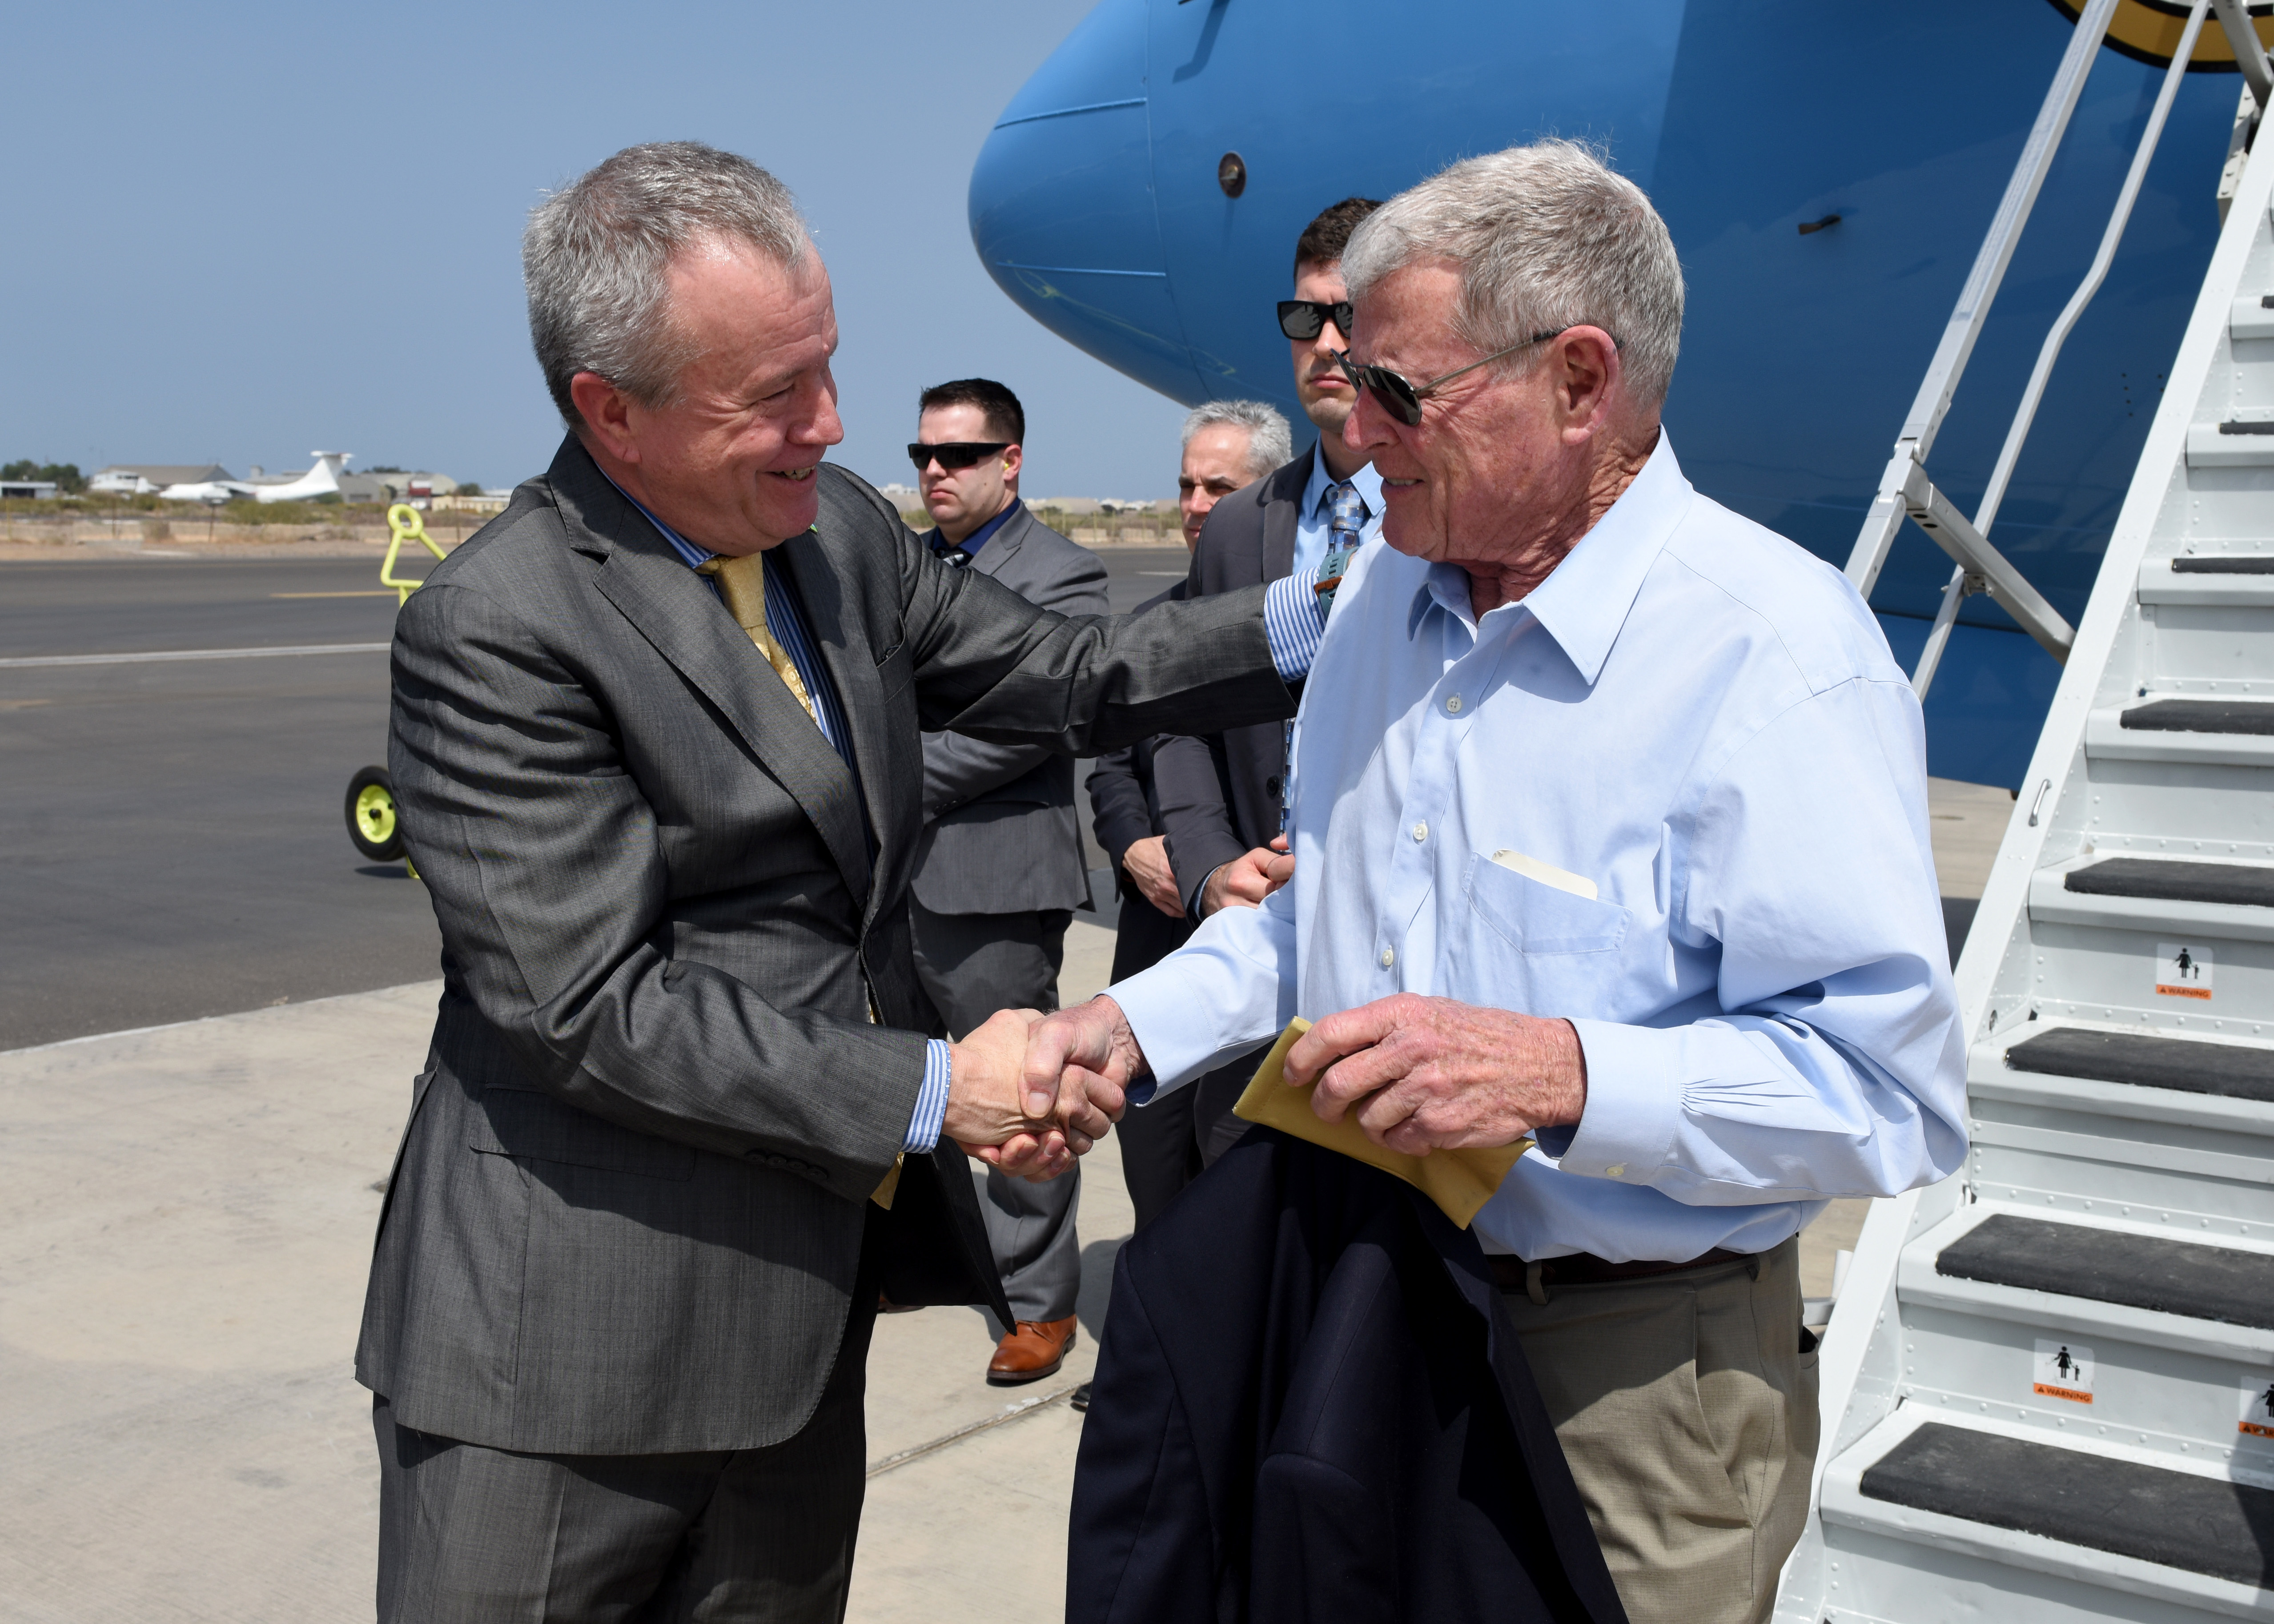 U.S. Ambassador to Djibouti Larry Andre' greets U.S. Sen. James Inhofe (R-Okla.) during a visit to Camp Lemonnier, Djibouti, Feb. 20, 2019. Inhofe visited Djibouti to meet with U.S. forces and embassy officials to gain an insight on the current posture within the combined joint operations area. (U.S. Air Force Photo by Staff Sgt. Franklin R. Ramos)